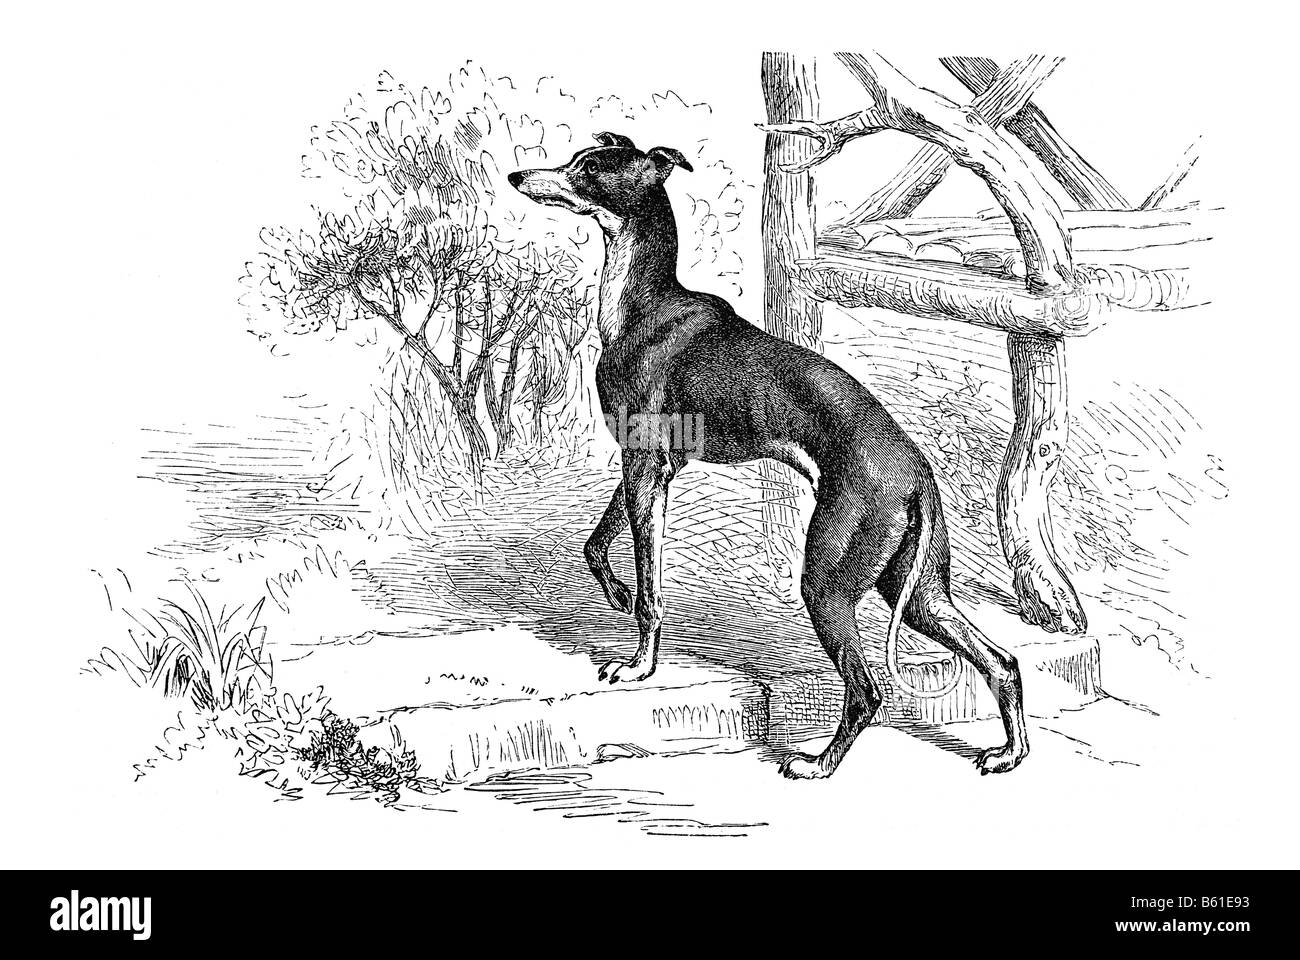 Greyhound Piccolo Levriero small breed of dog of the sight hound type sighthounds Stock Photo